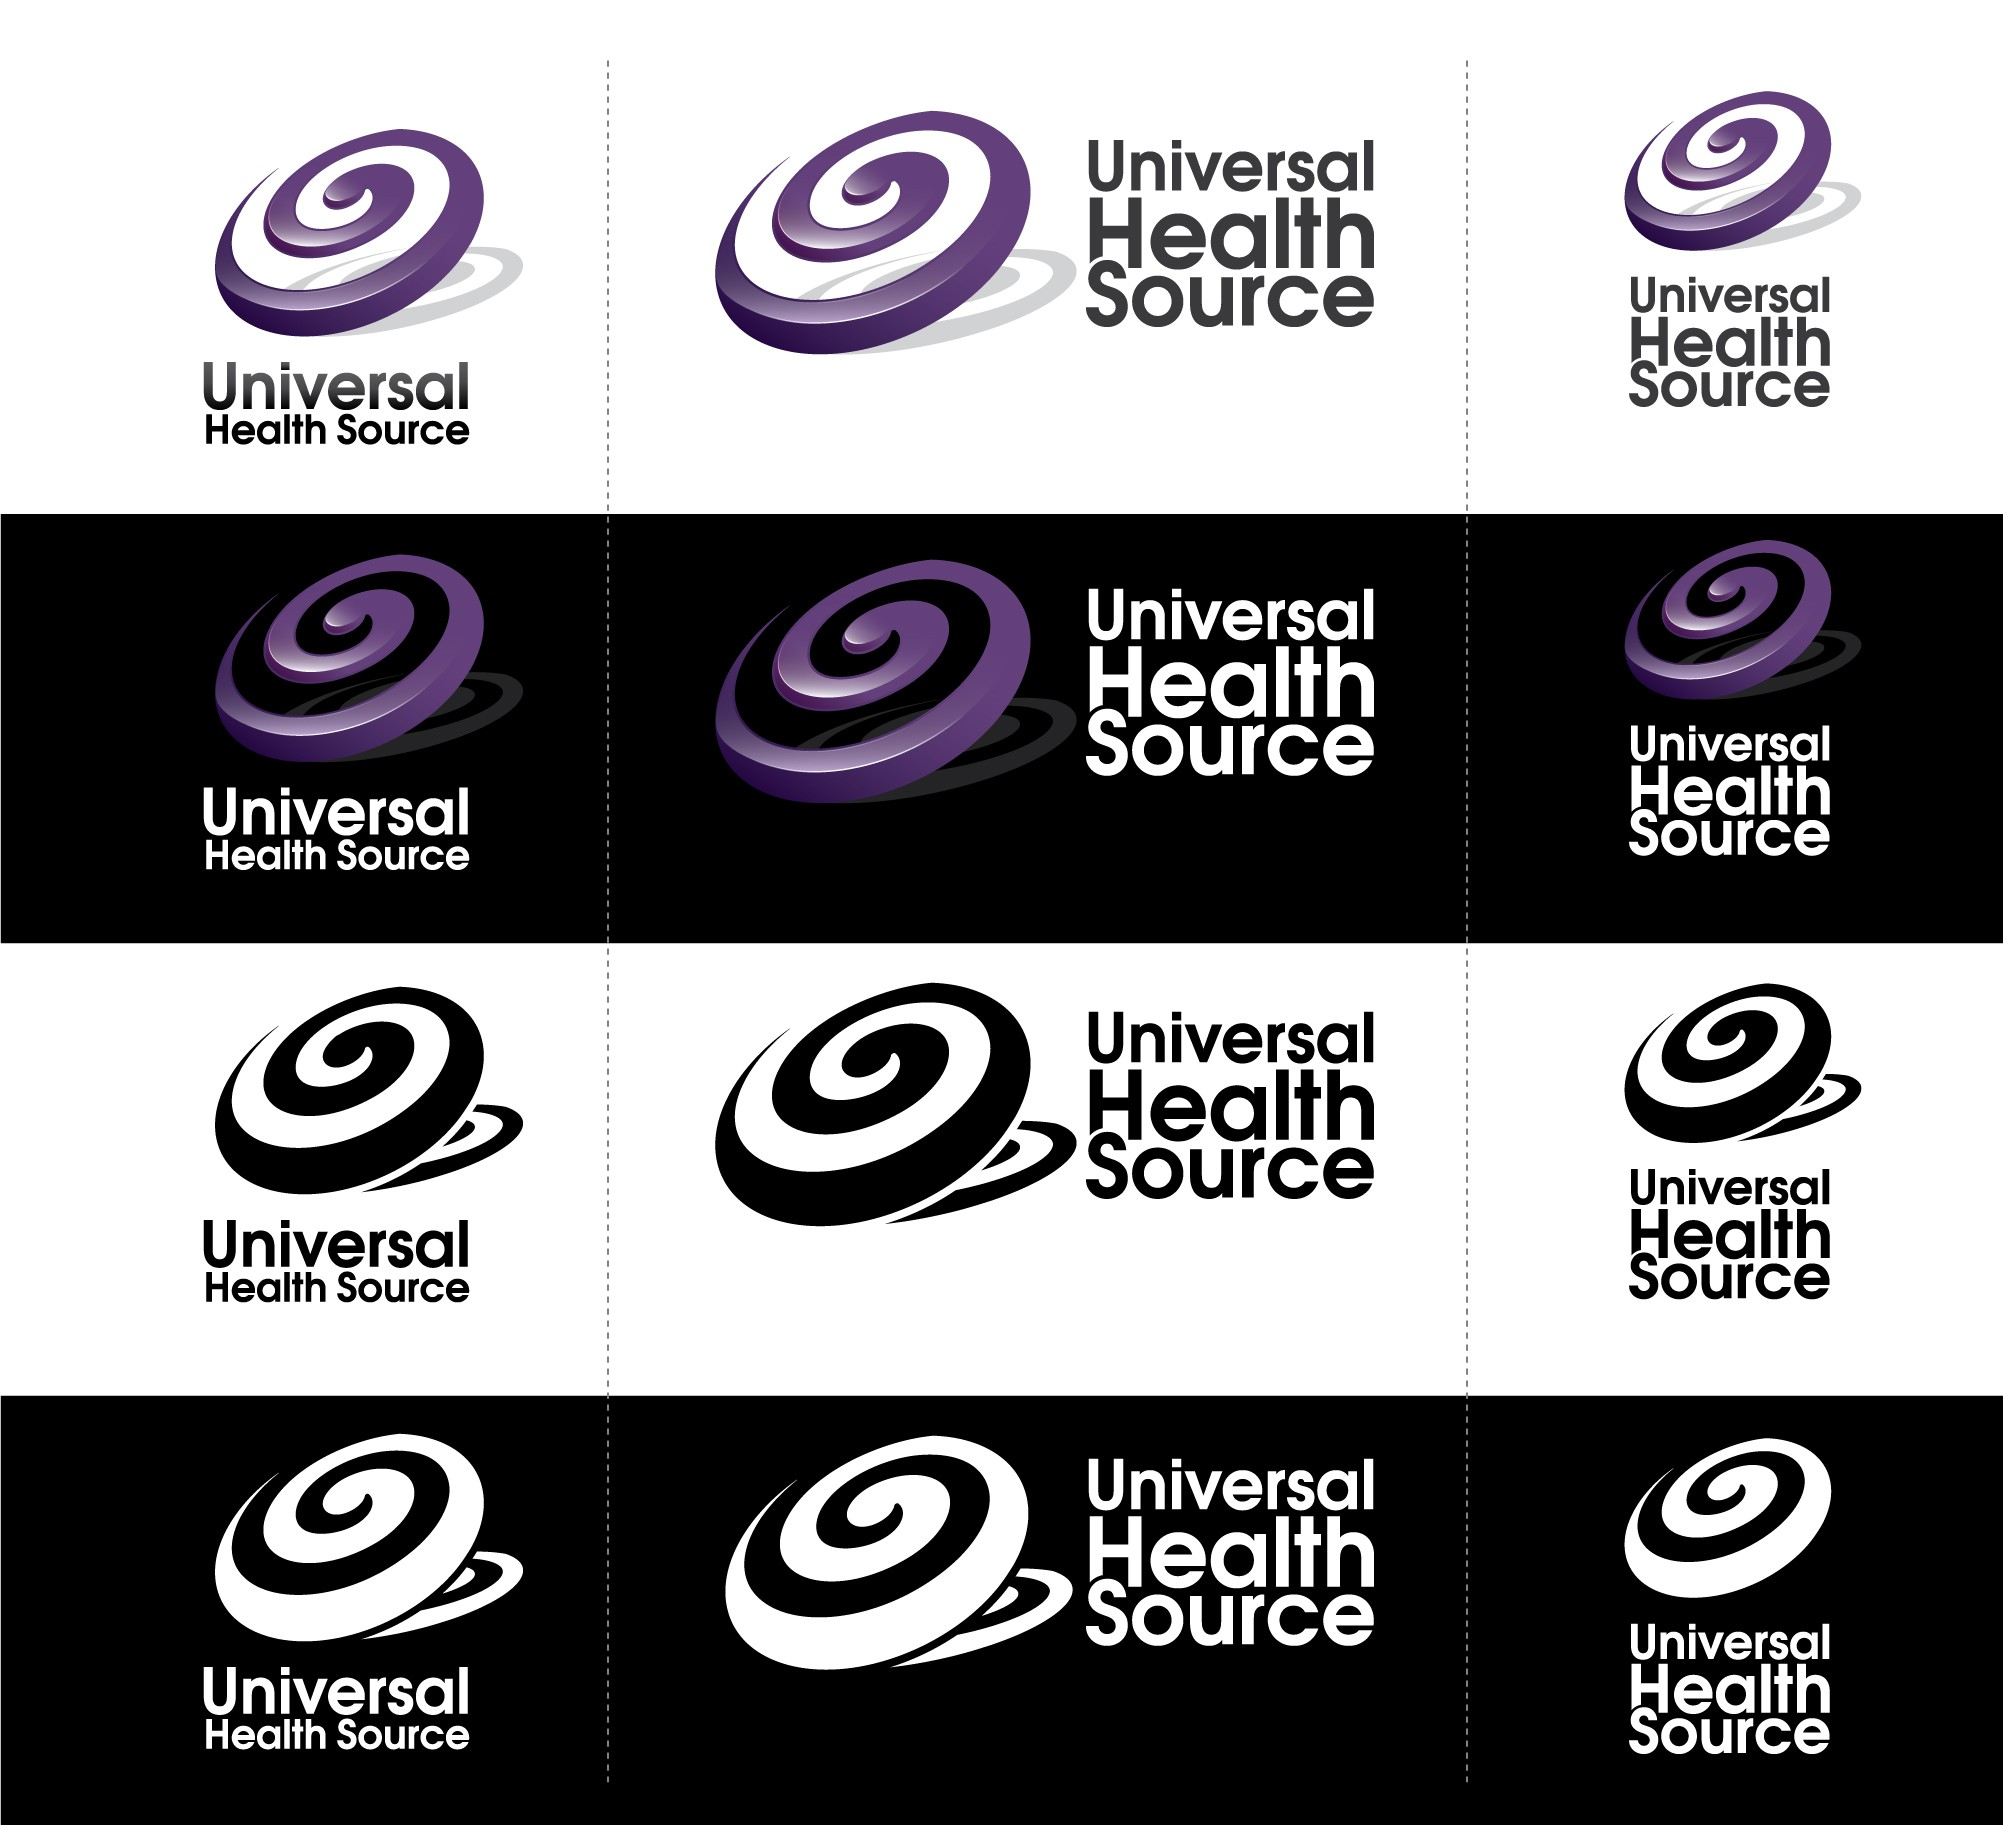 Help Universal Health Source with a new logo